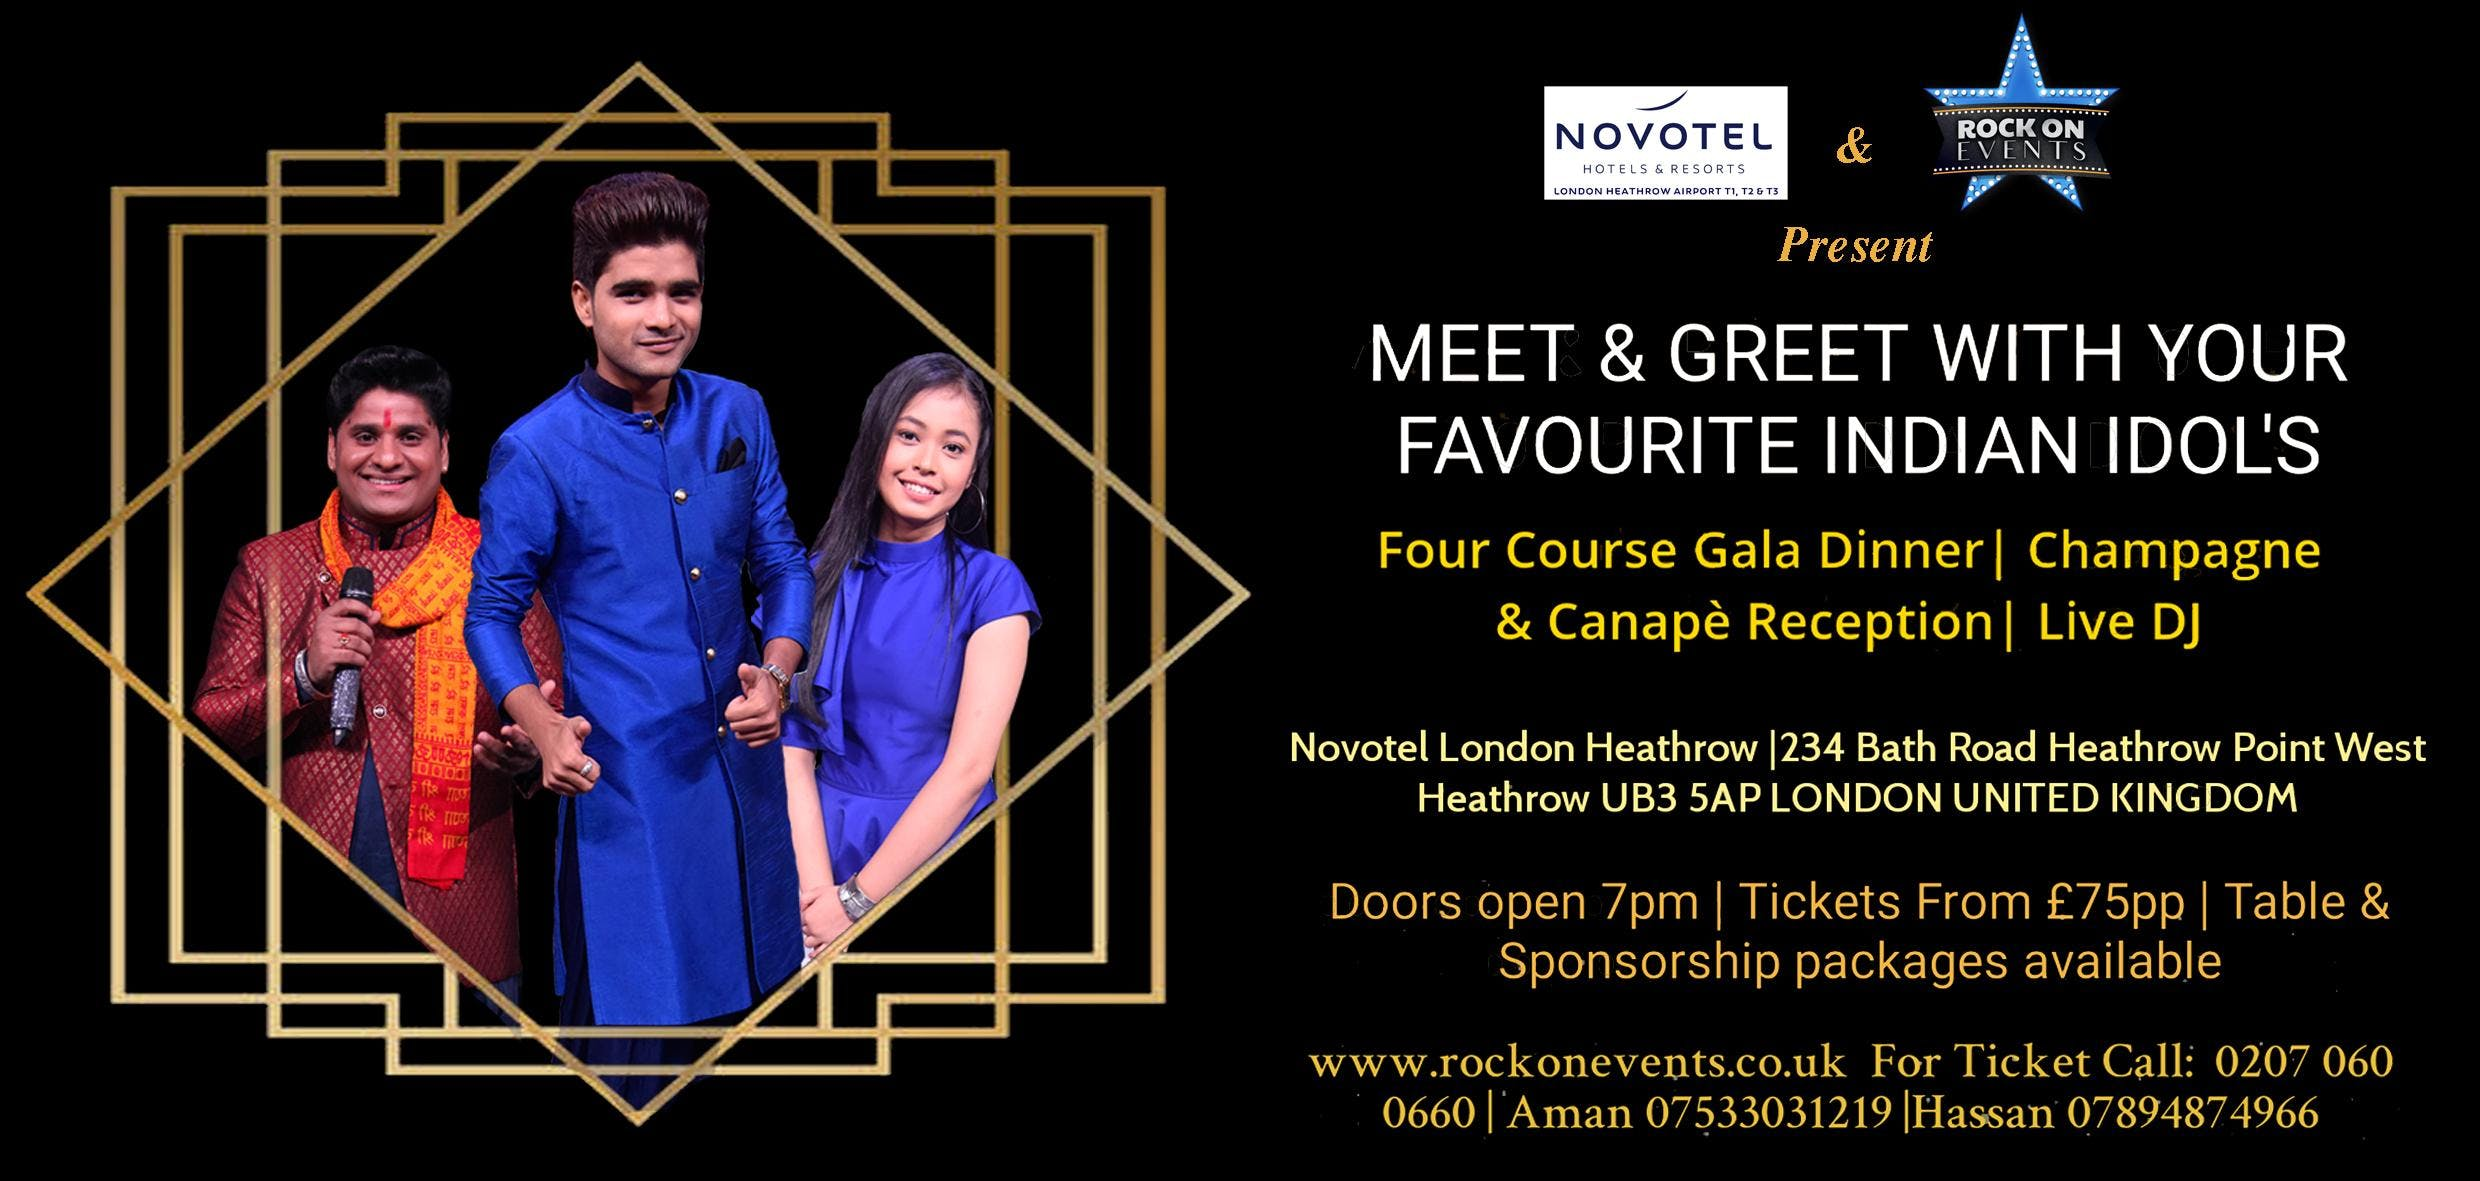 Indian Idol Stars - Meet & Greet - 4 Course Gala Dinner